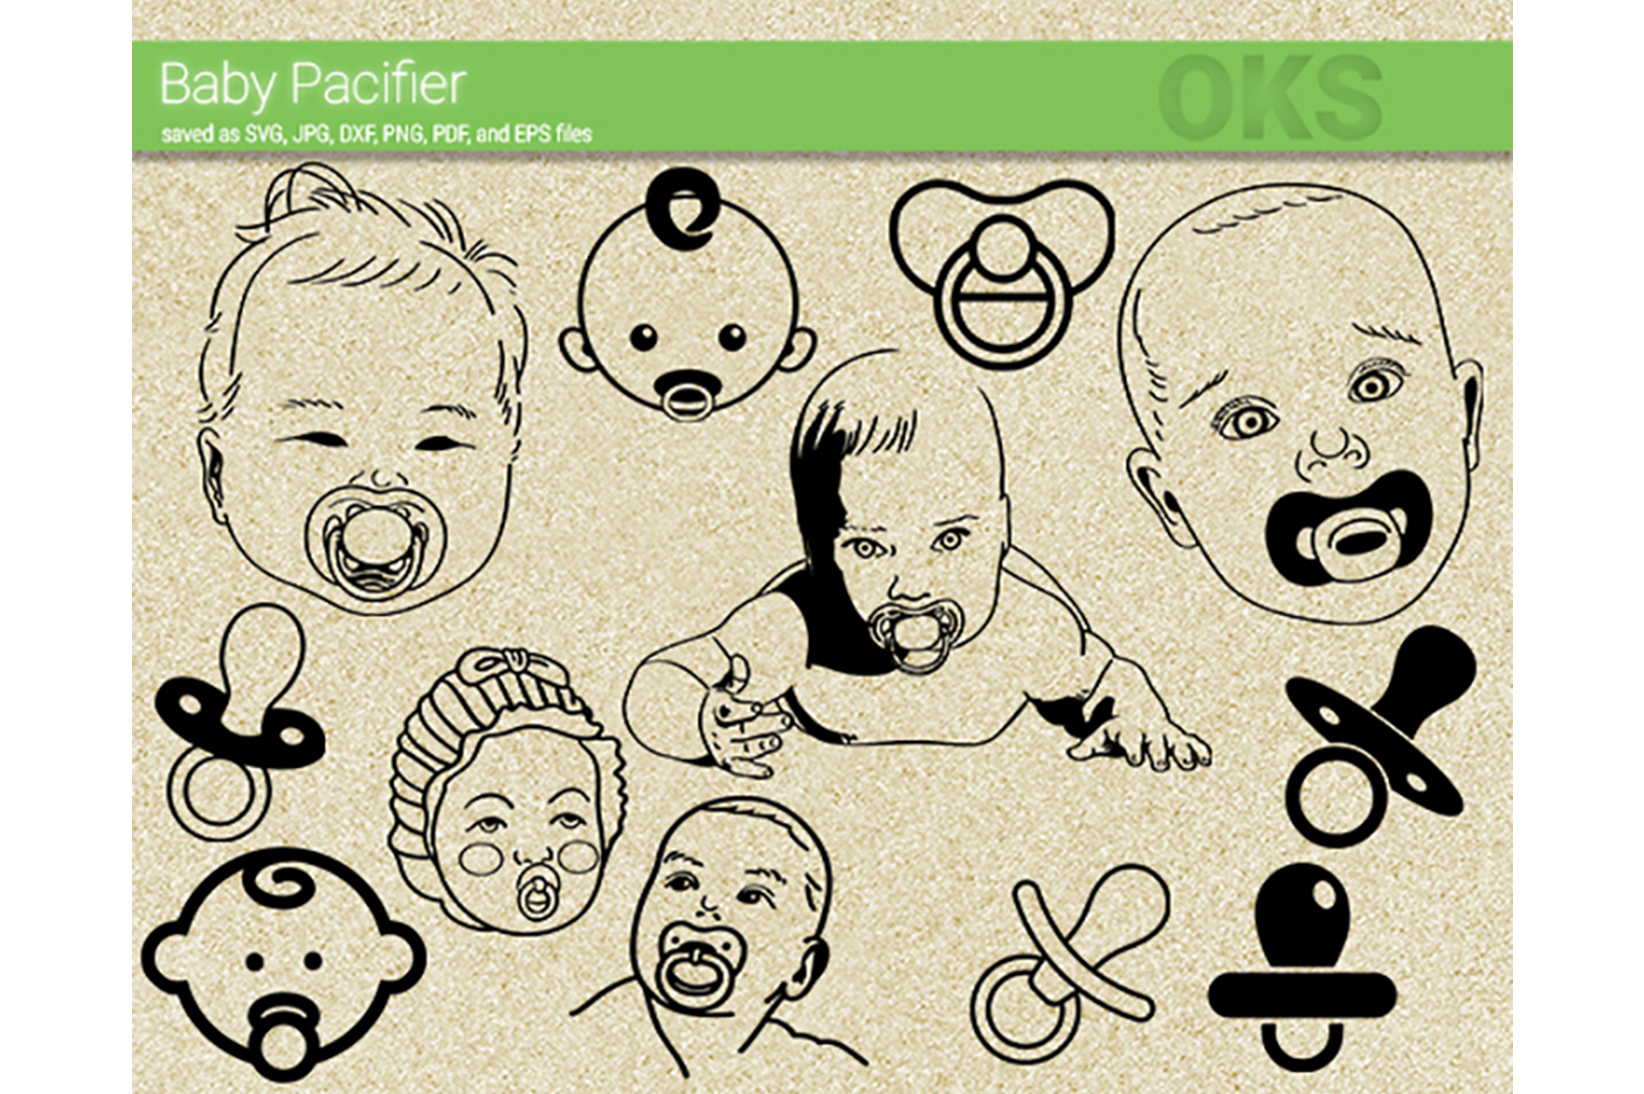 Download Free Baby Pacifier Svg Vector Graphic By Crafteroks Creative Fabrica for Cricut Explore, Silhouette and other cutting machines.